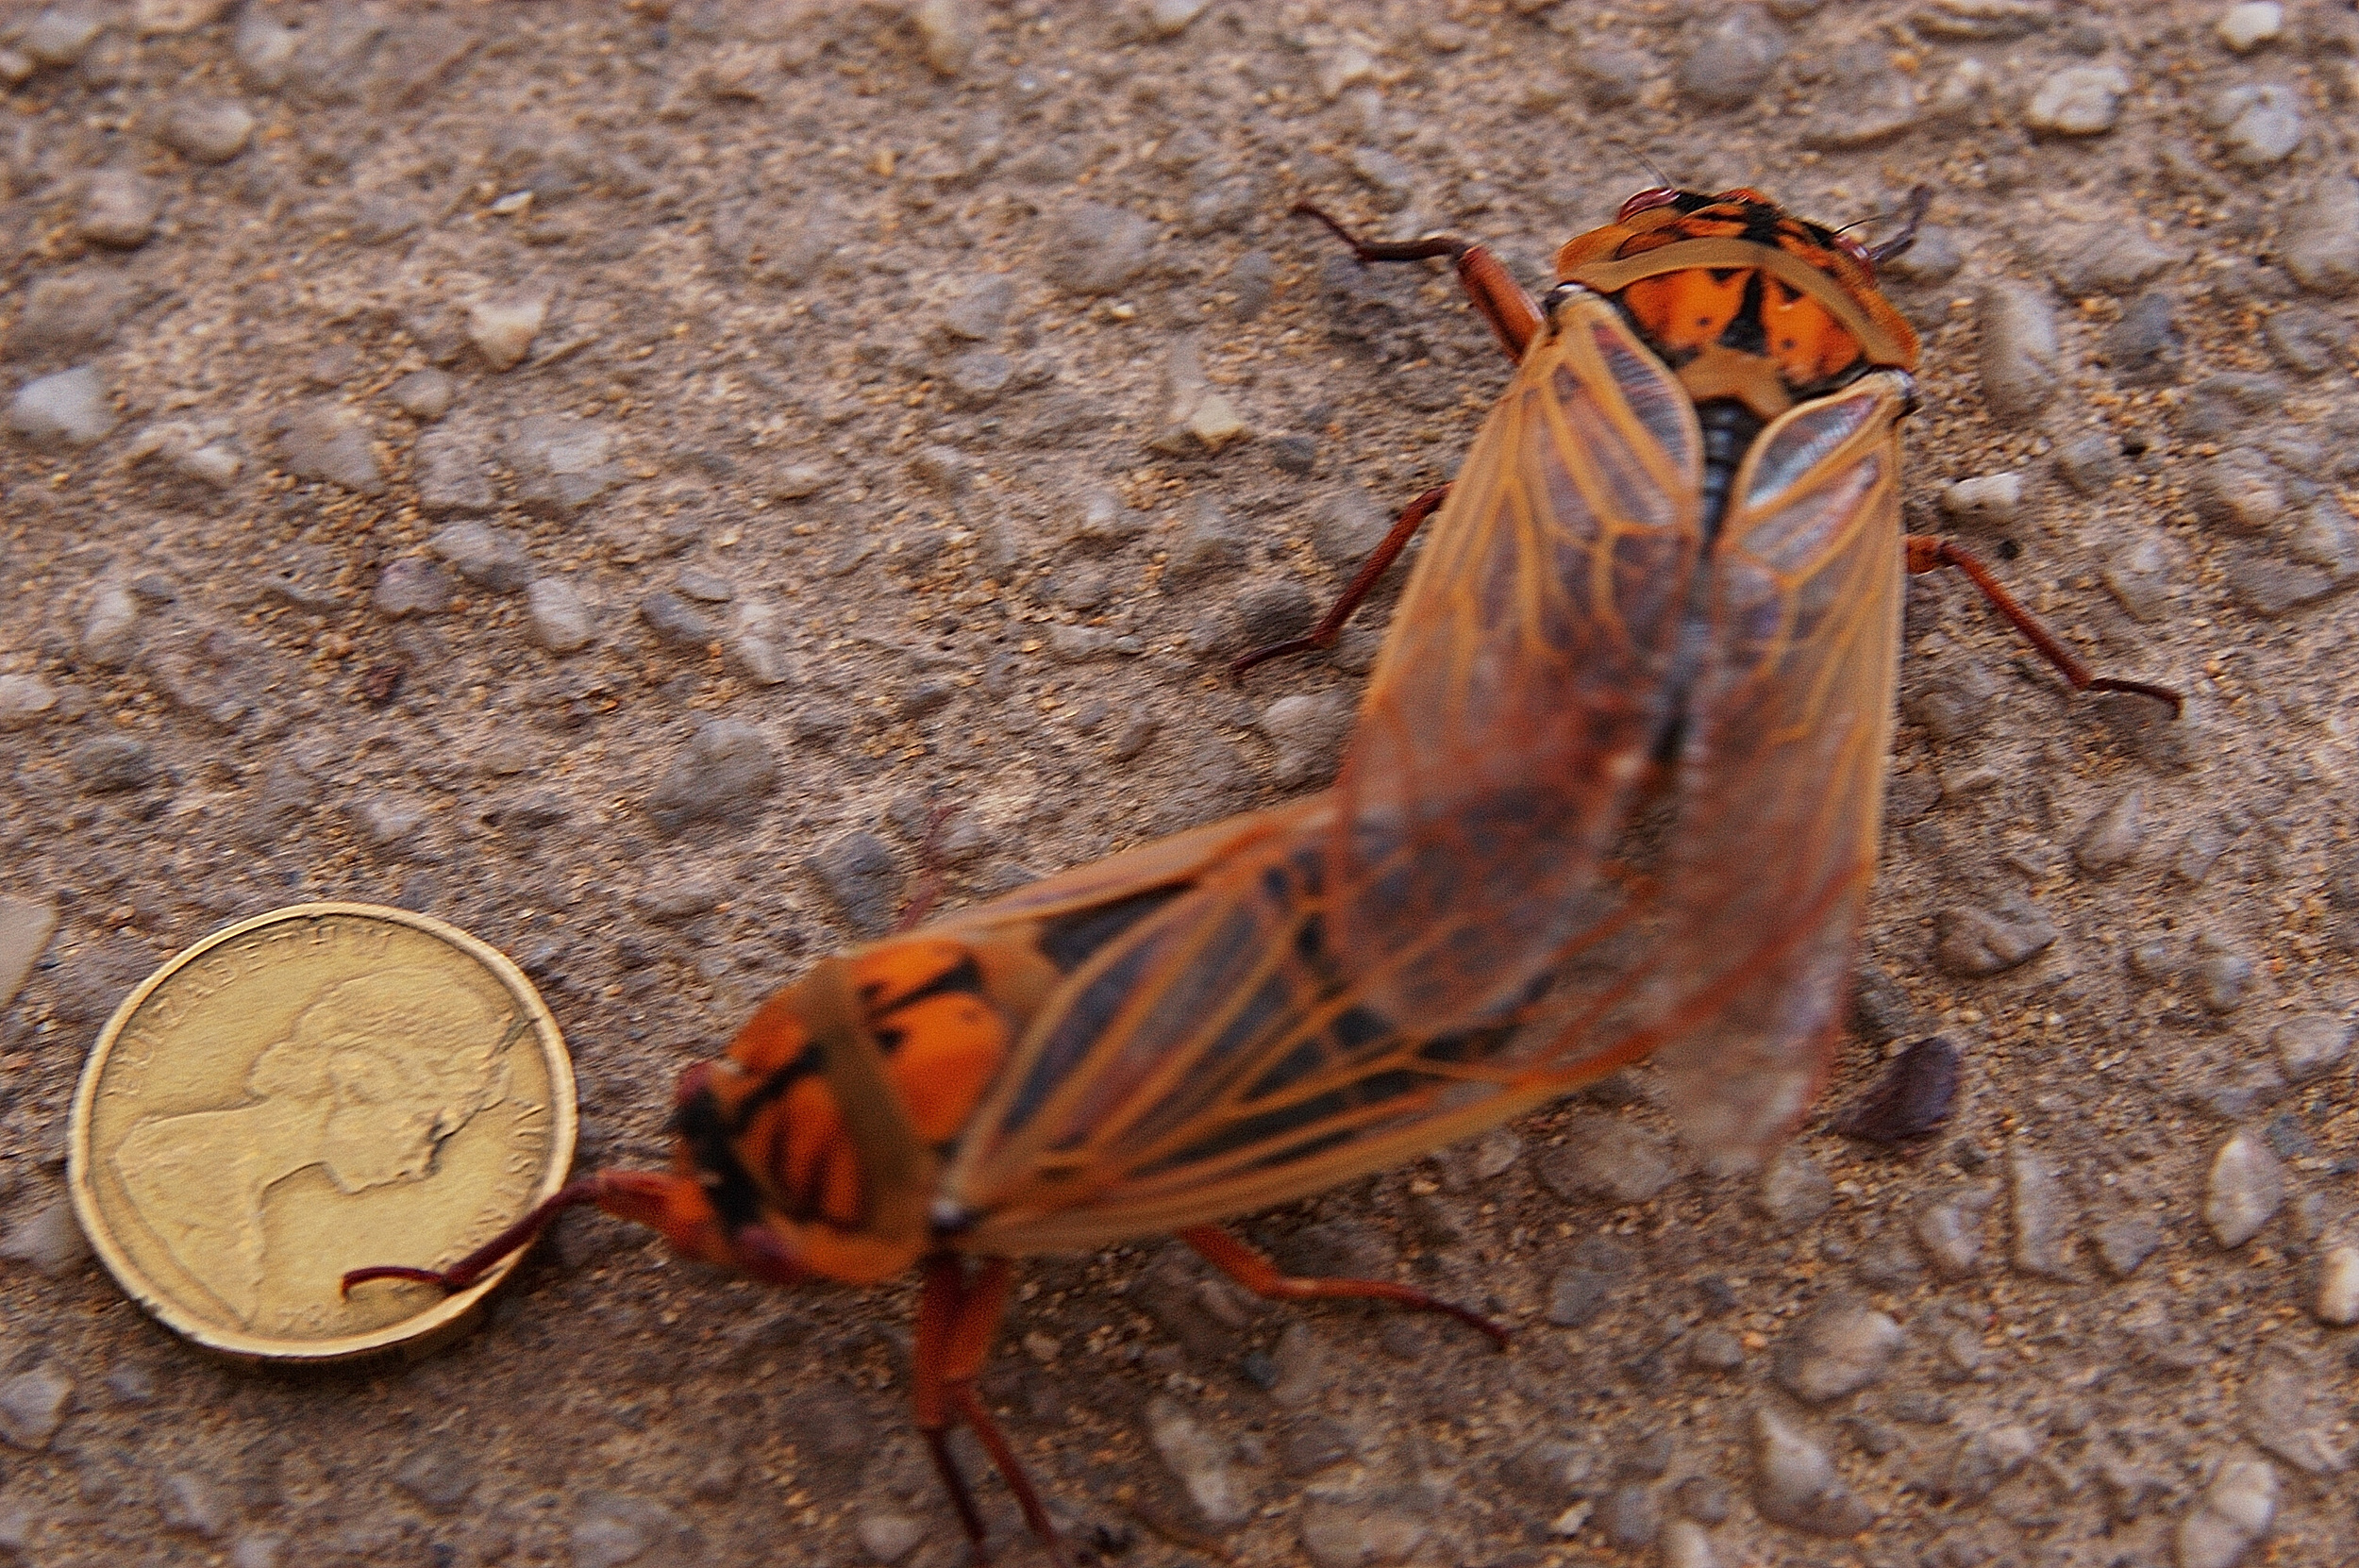 During our springtime visit, the cicadas had hatched. There were thousands of them all calling at the same time. The noise was incredible, and we saw them everywhere.